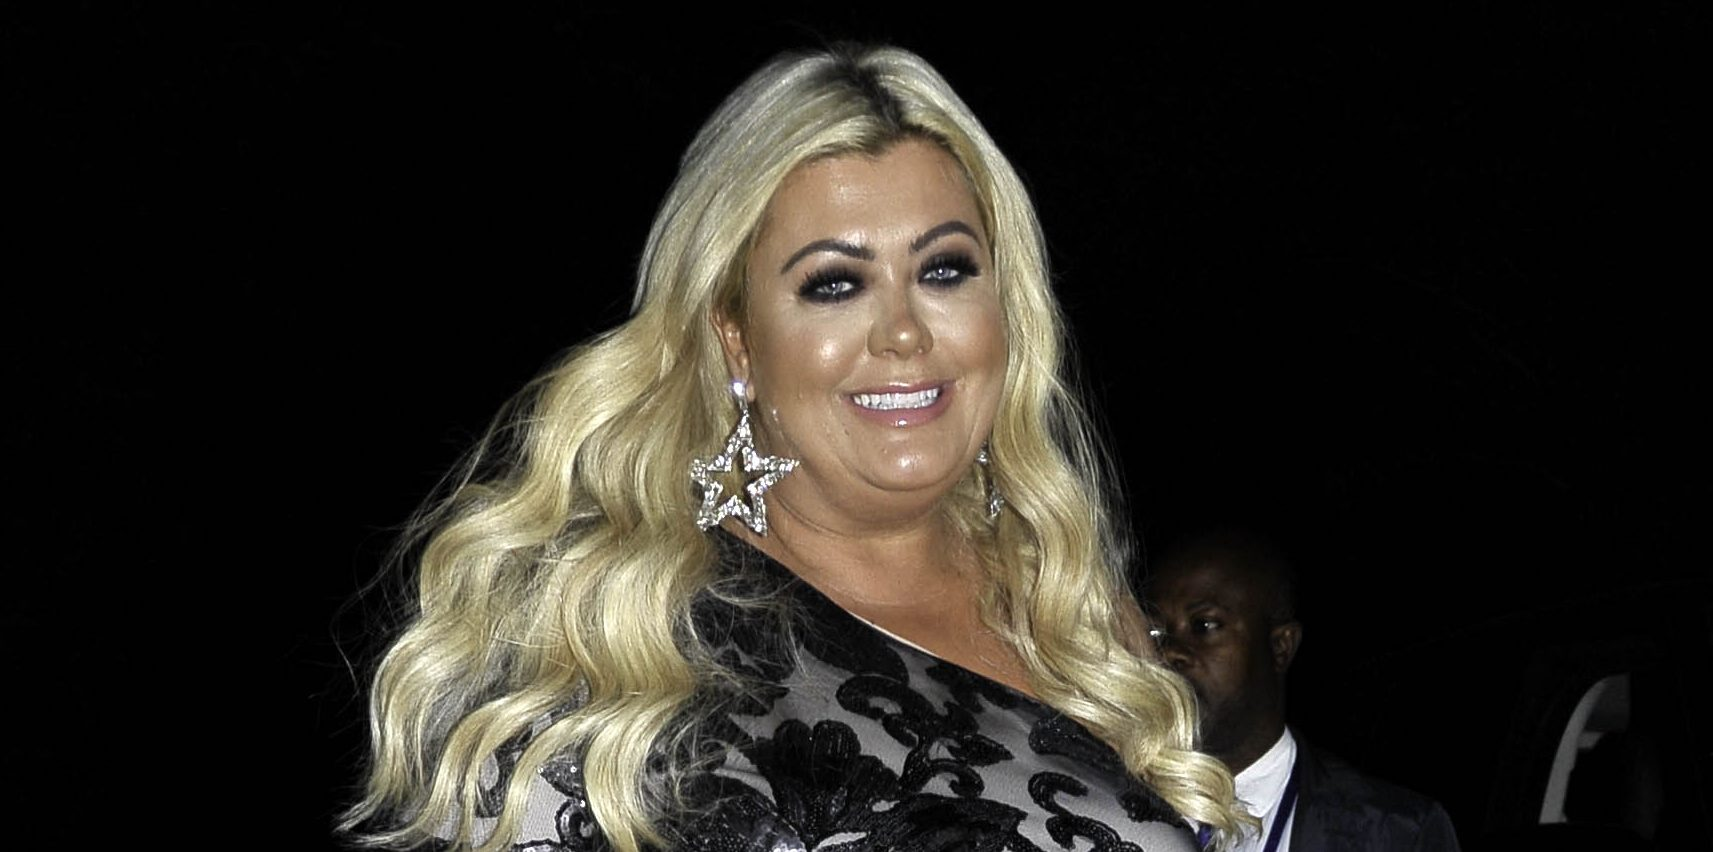 Gemma Collins wants her own 'statue' in Madame Tussauds and for the Queen to invite her to tea